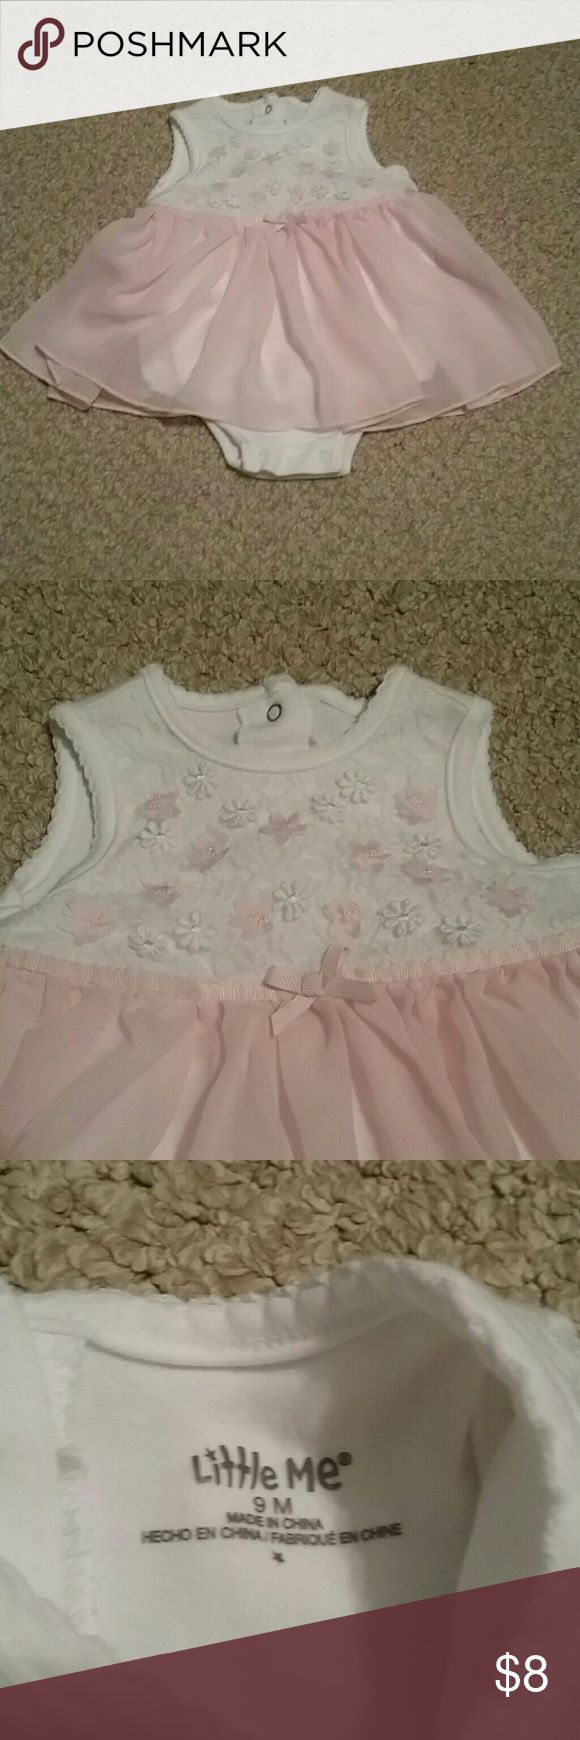 Precious pink and white dress White dress with light pink sheer skirt.  Onesie underneath.  Three snaps on the back.  Front has white lace with white and light pink flowers and a pink bow at the waist.  Excellent condition... only worn once for a tea party.  Runs a little small.  So precious! Little Me Dresses